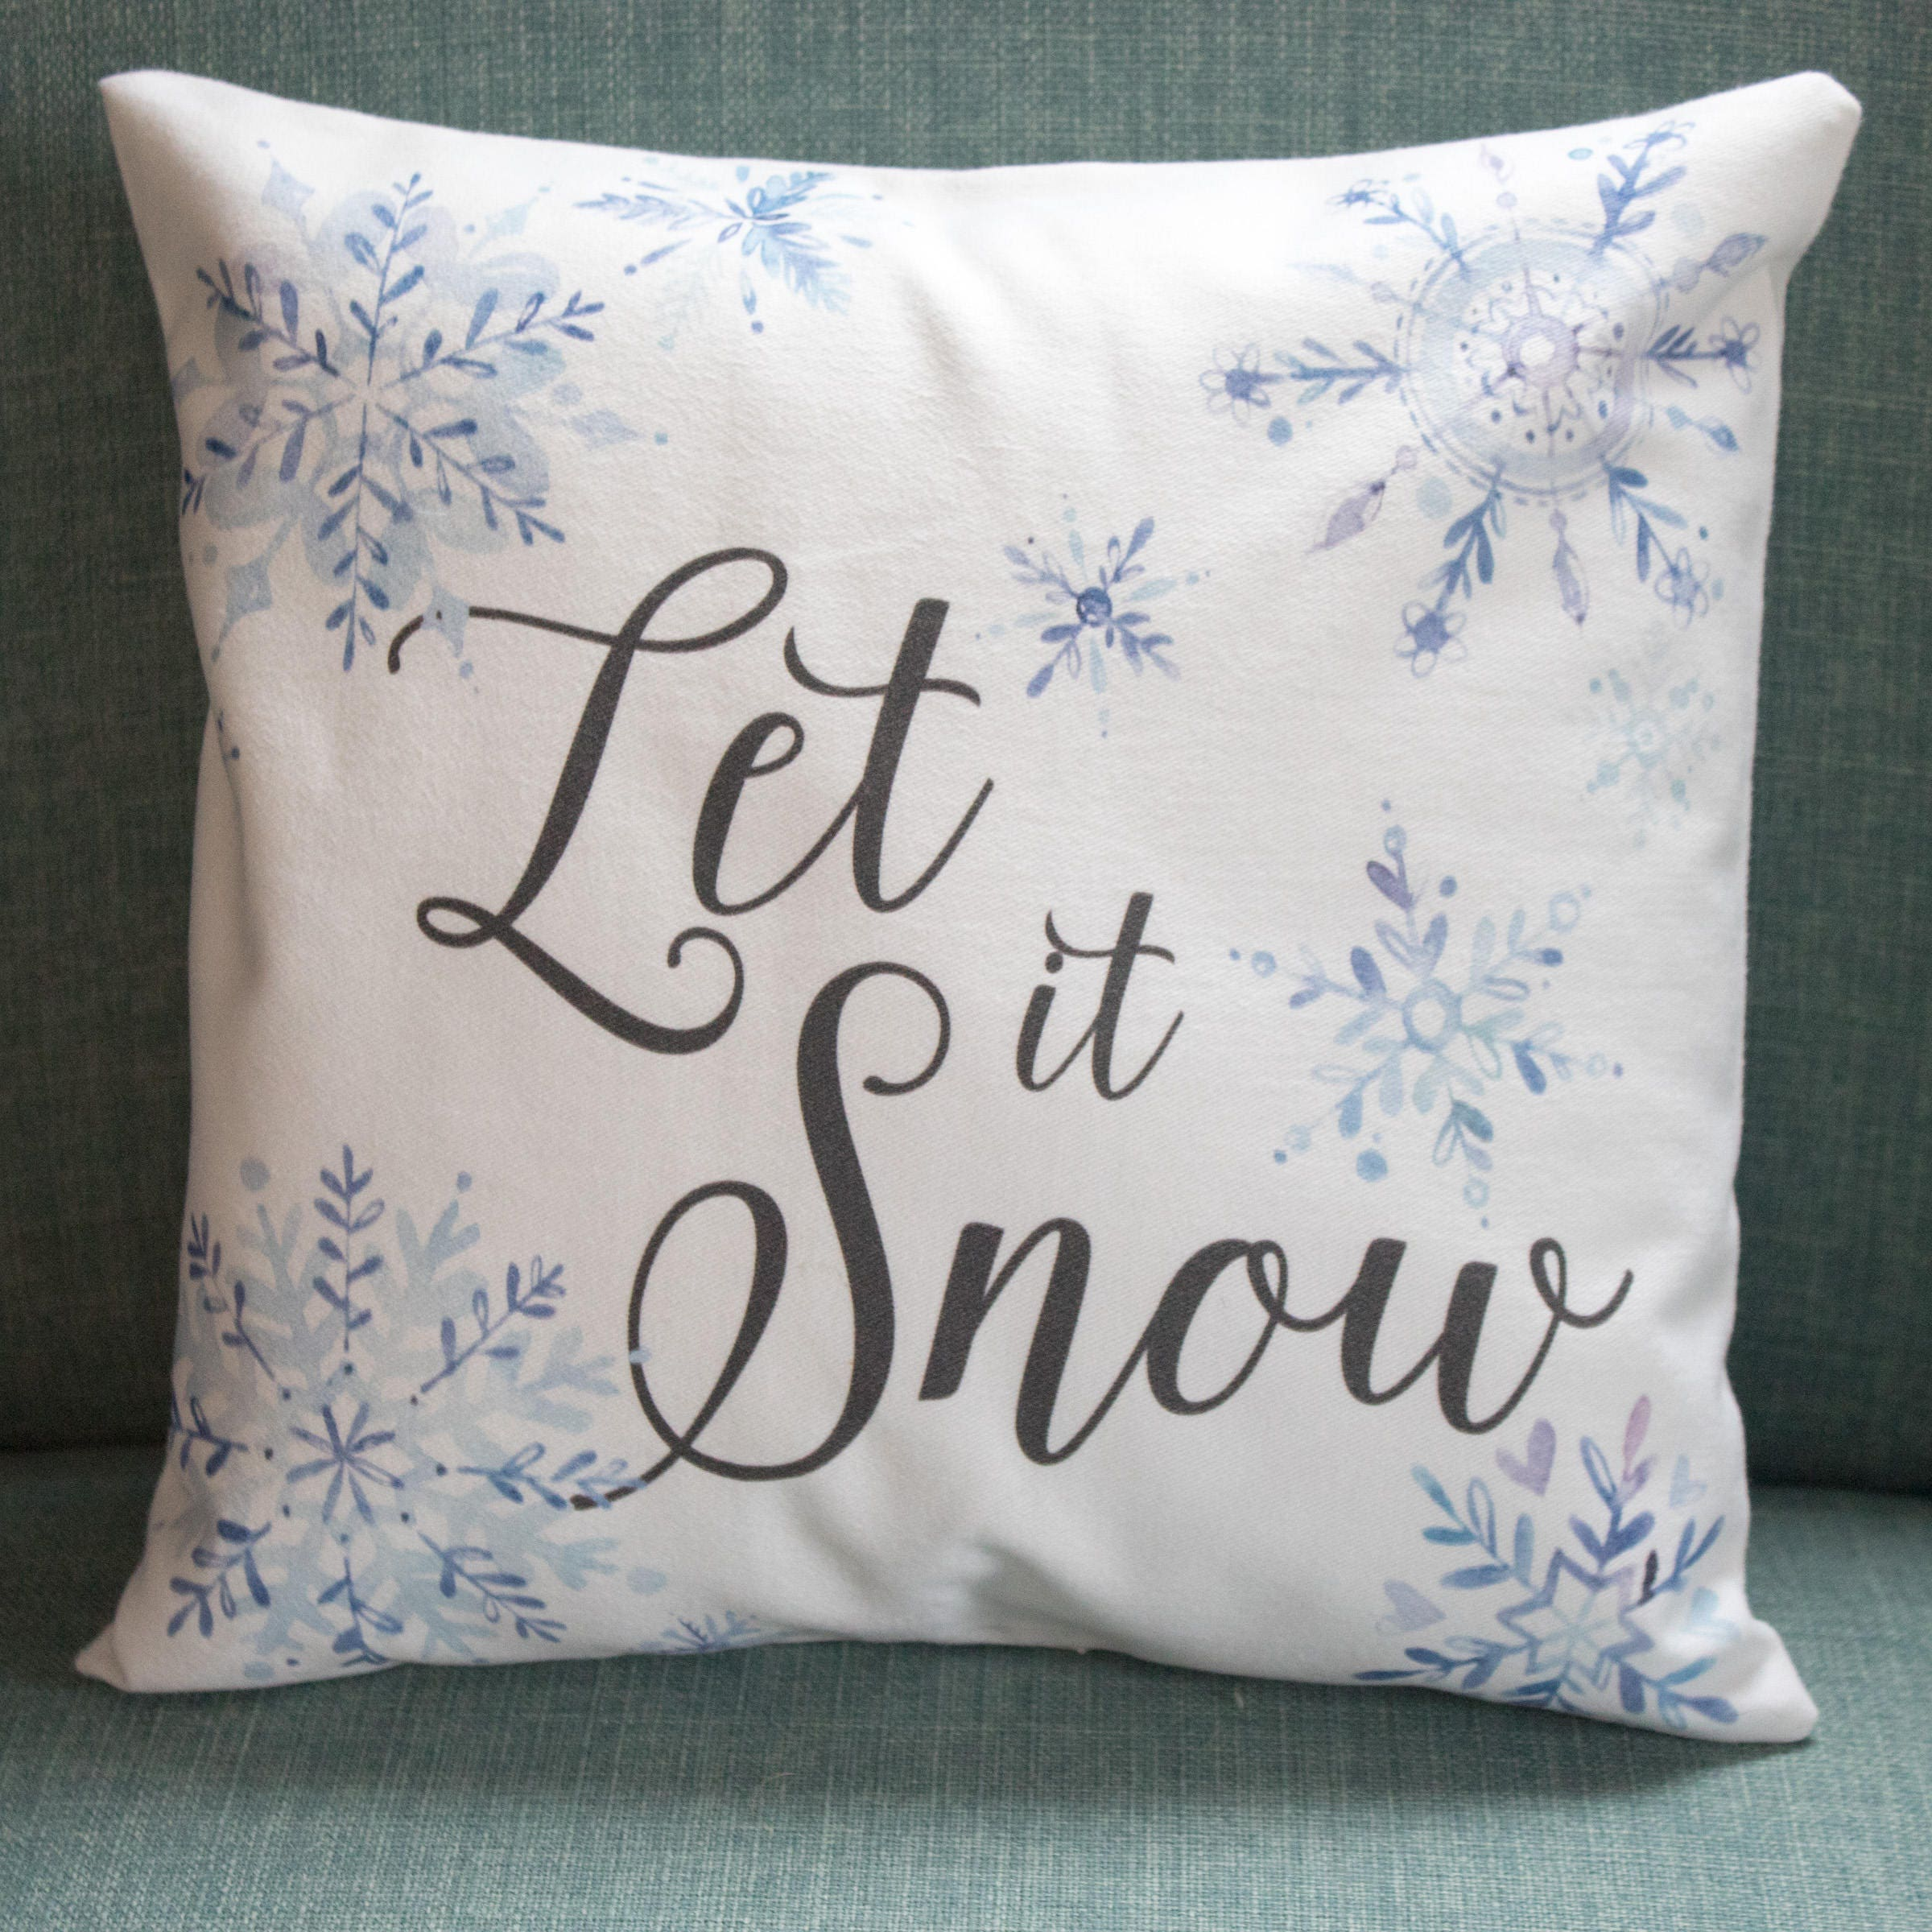 Let it Snow winter decor throw pillow with blue watercolor snowflakes